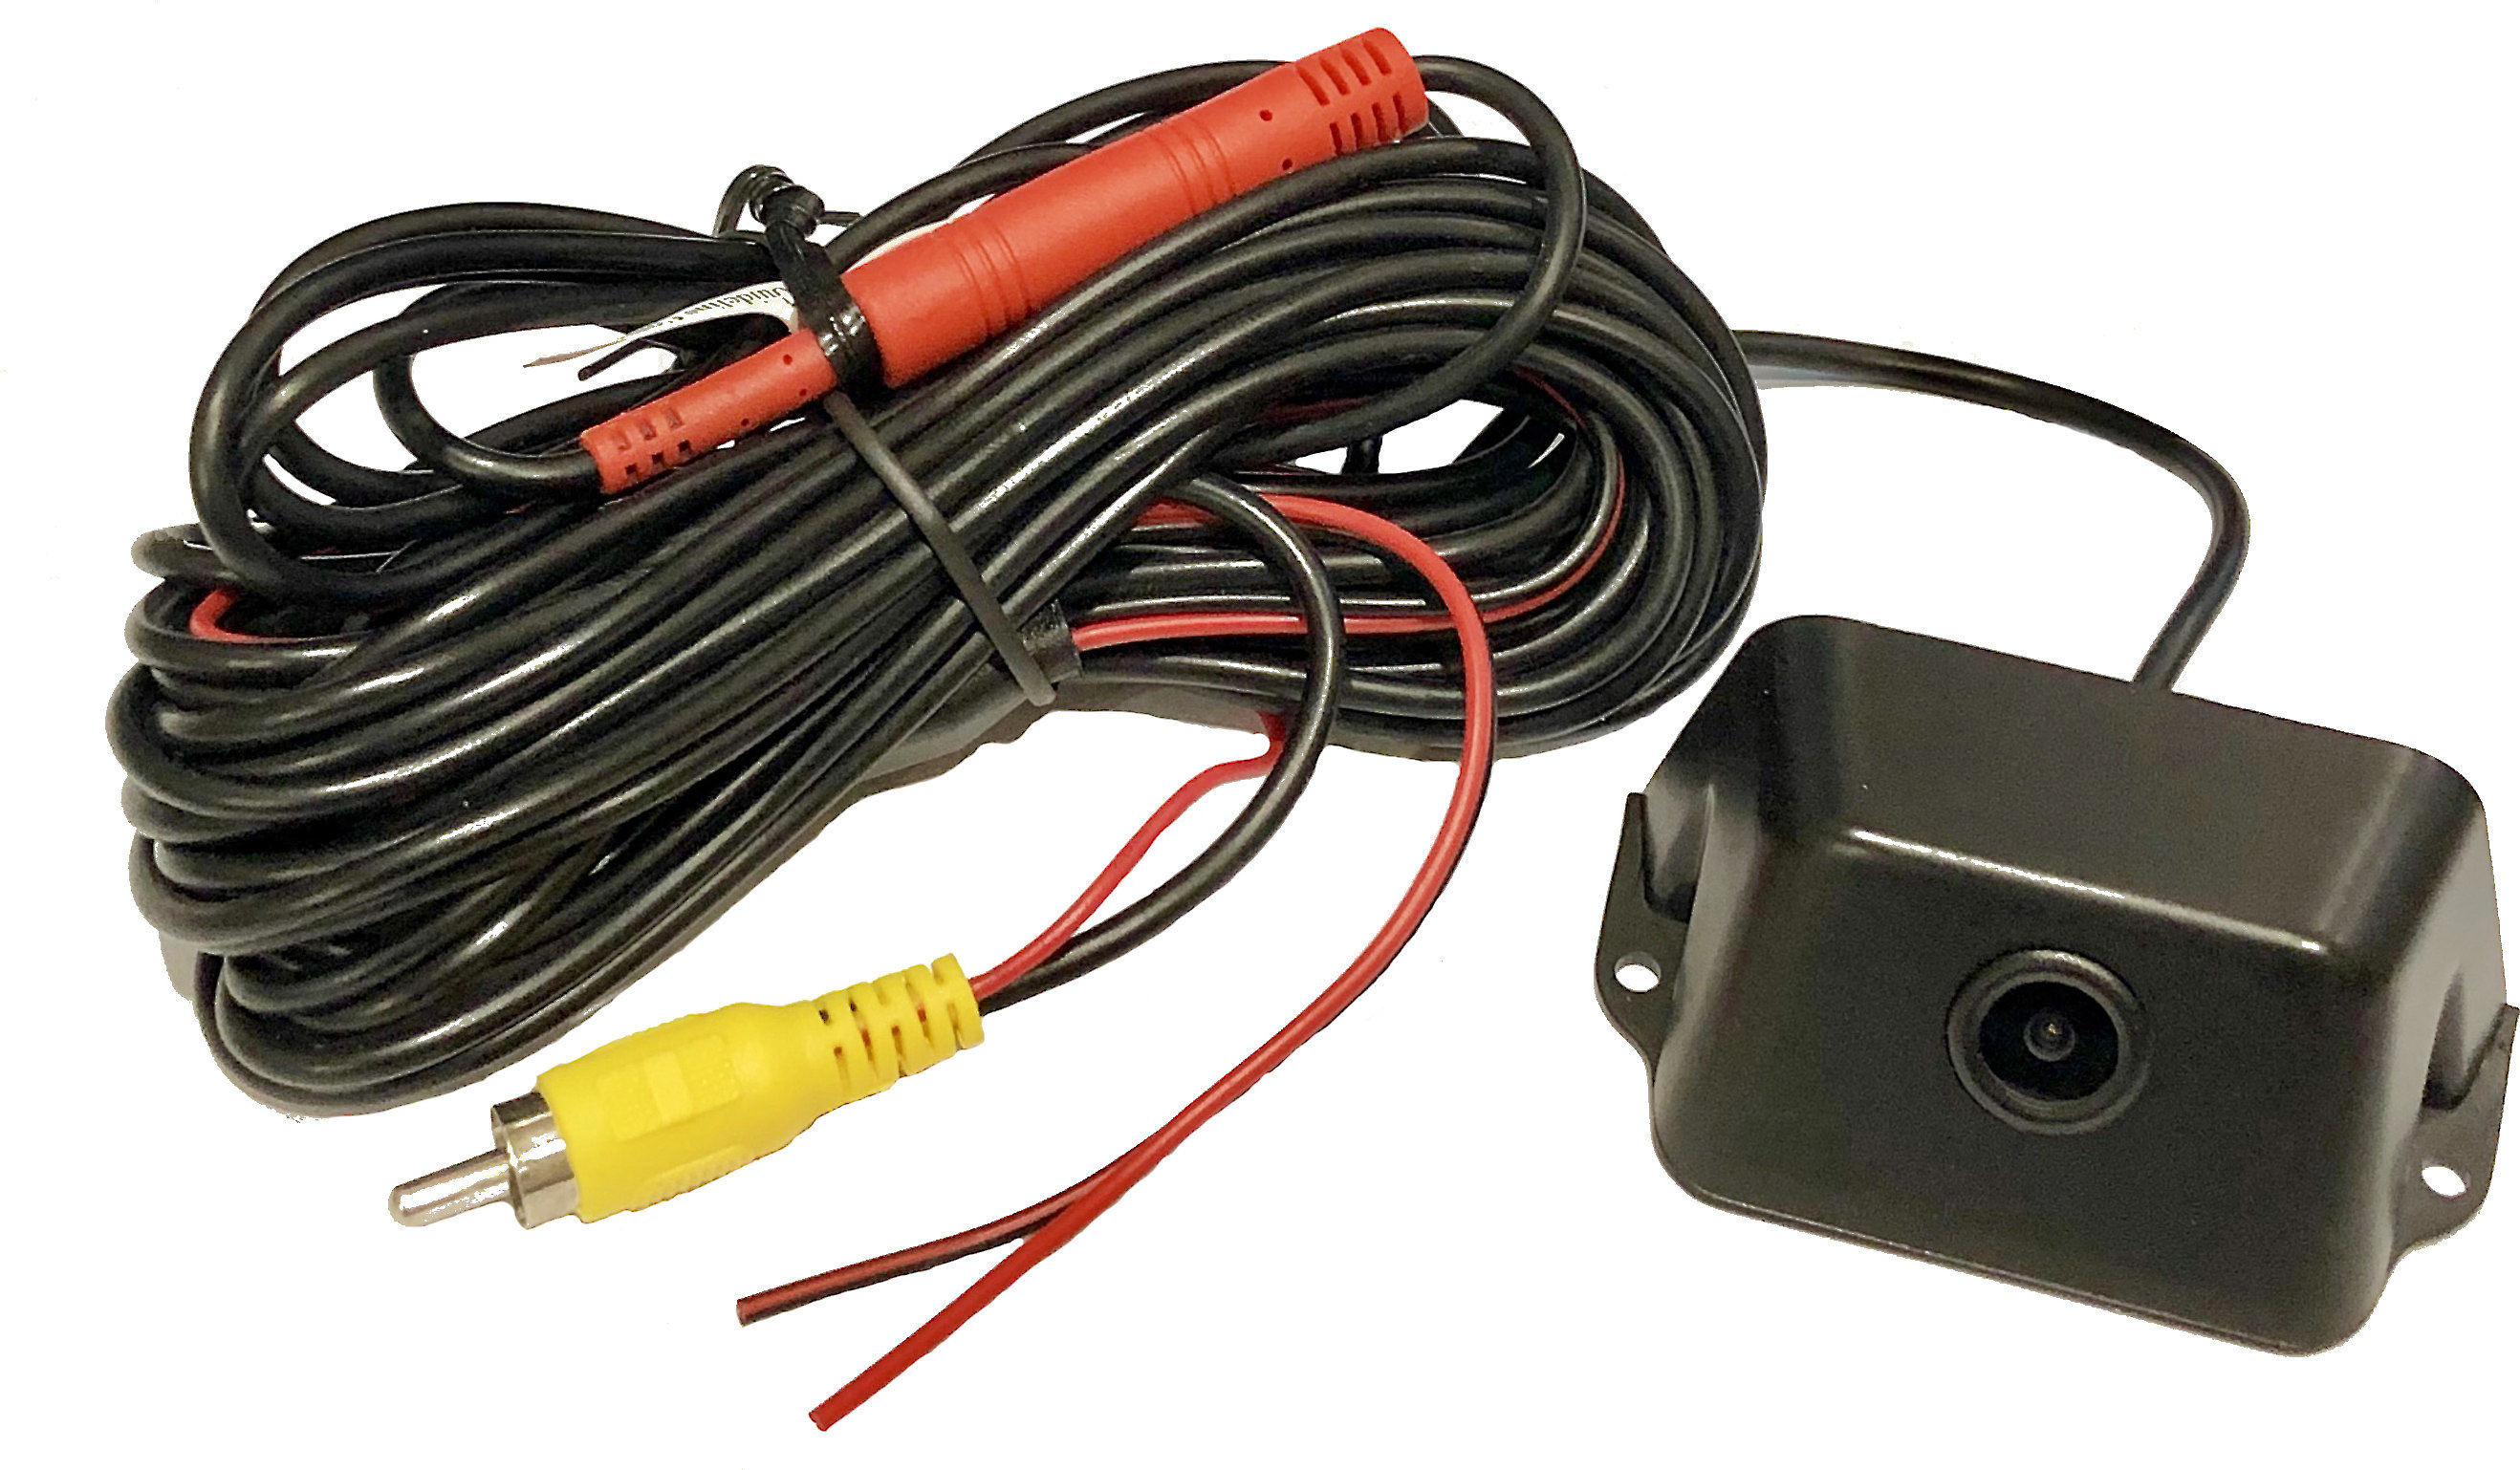 crux rvcch-75cc backup camera system add a rear-view camera to your factory  radio in 2014-up dodge durango and jeep grand cherokee vehicles at  crutchfield